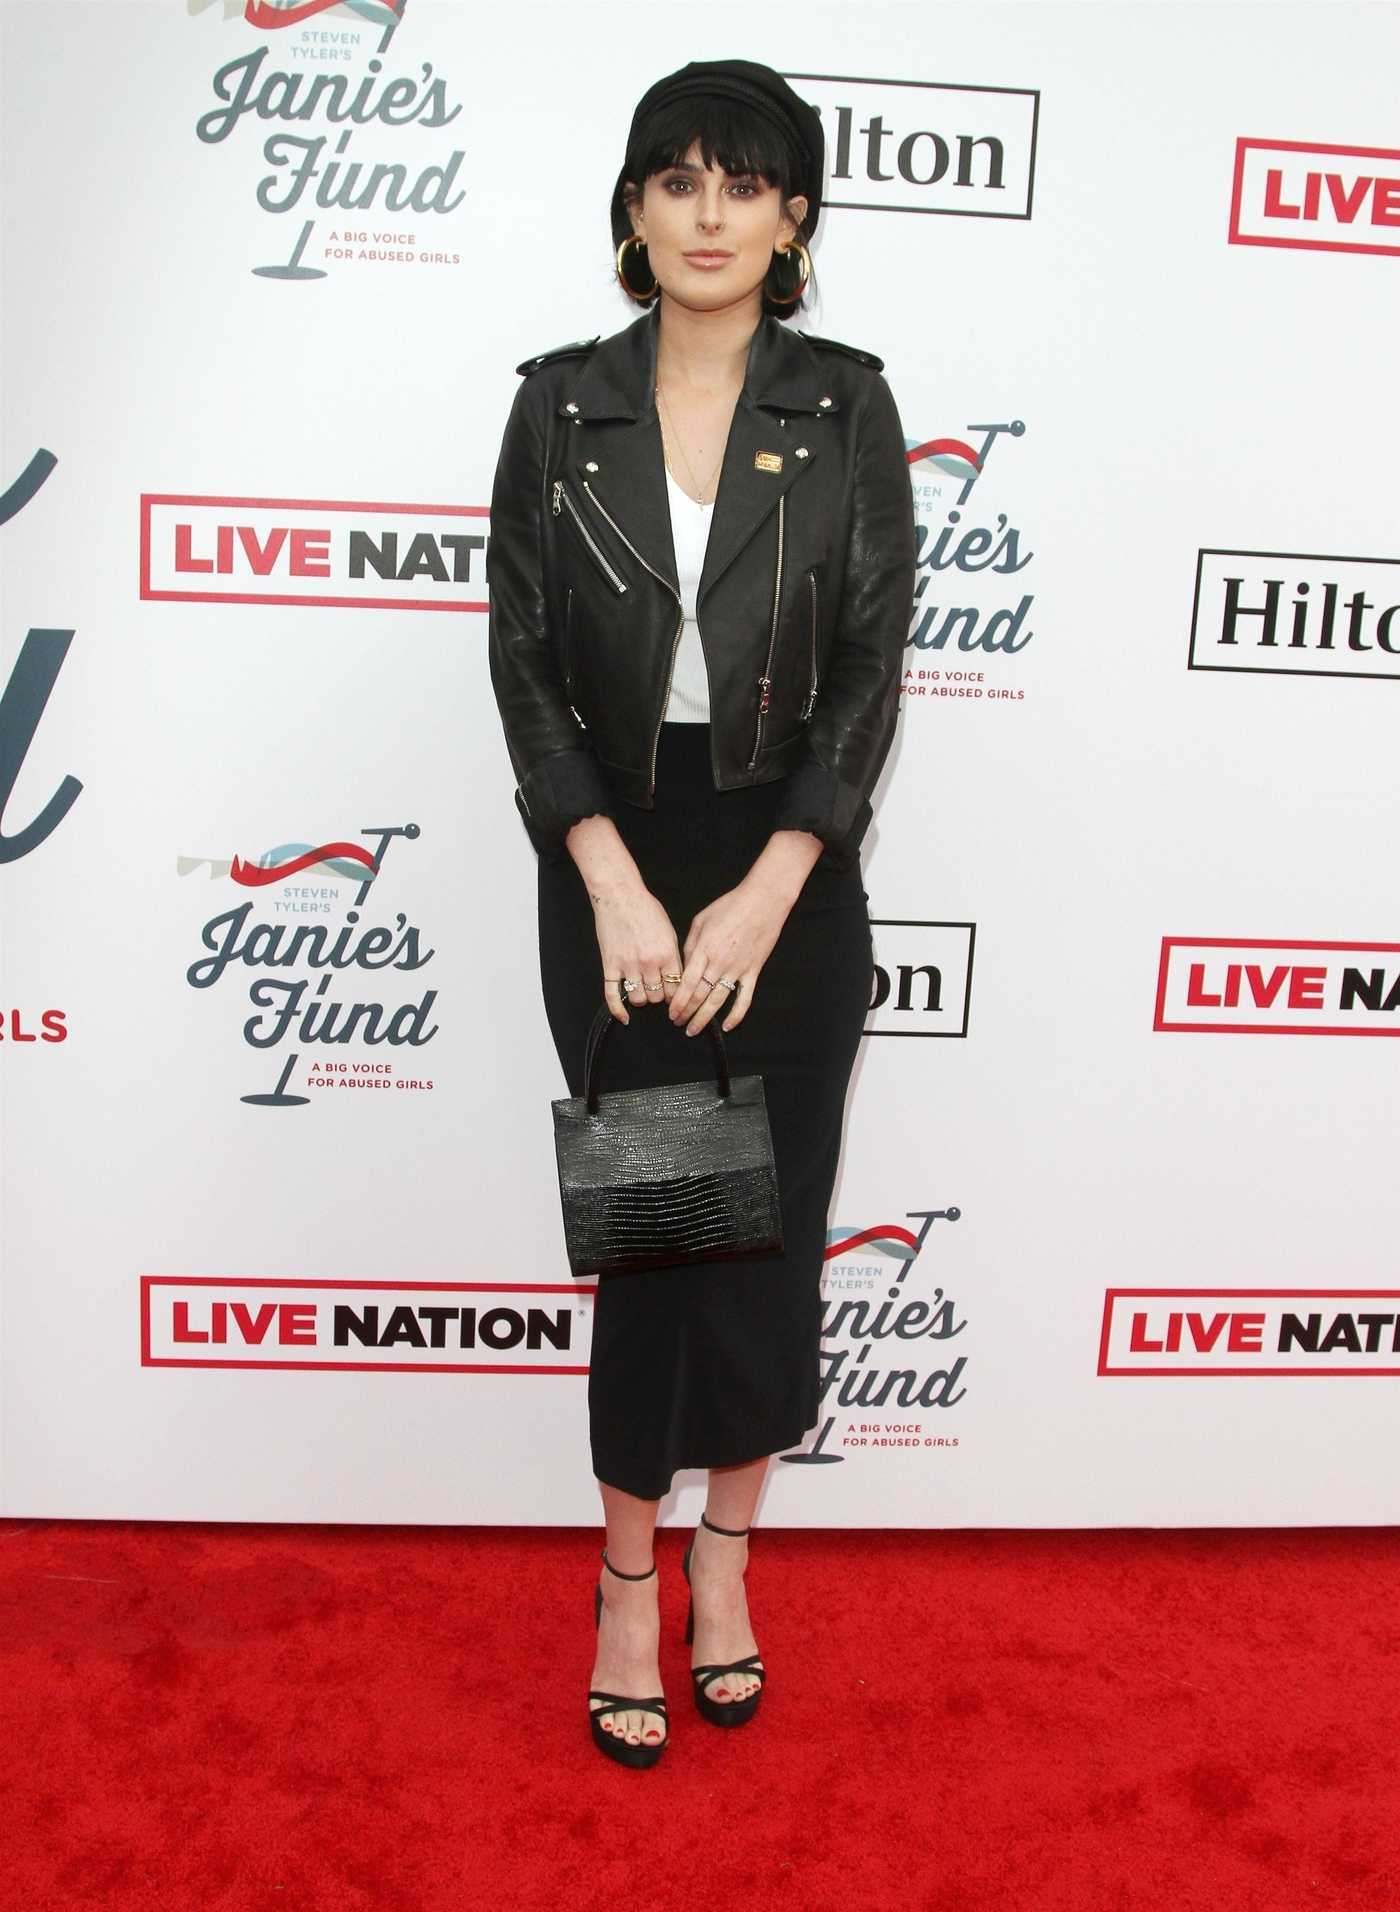 Rumer Willis Attends Steven Tyler's Grammy Awards Viewing Party in Hollywood 02/10/2019